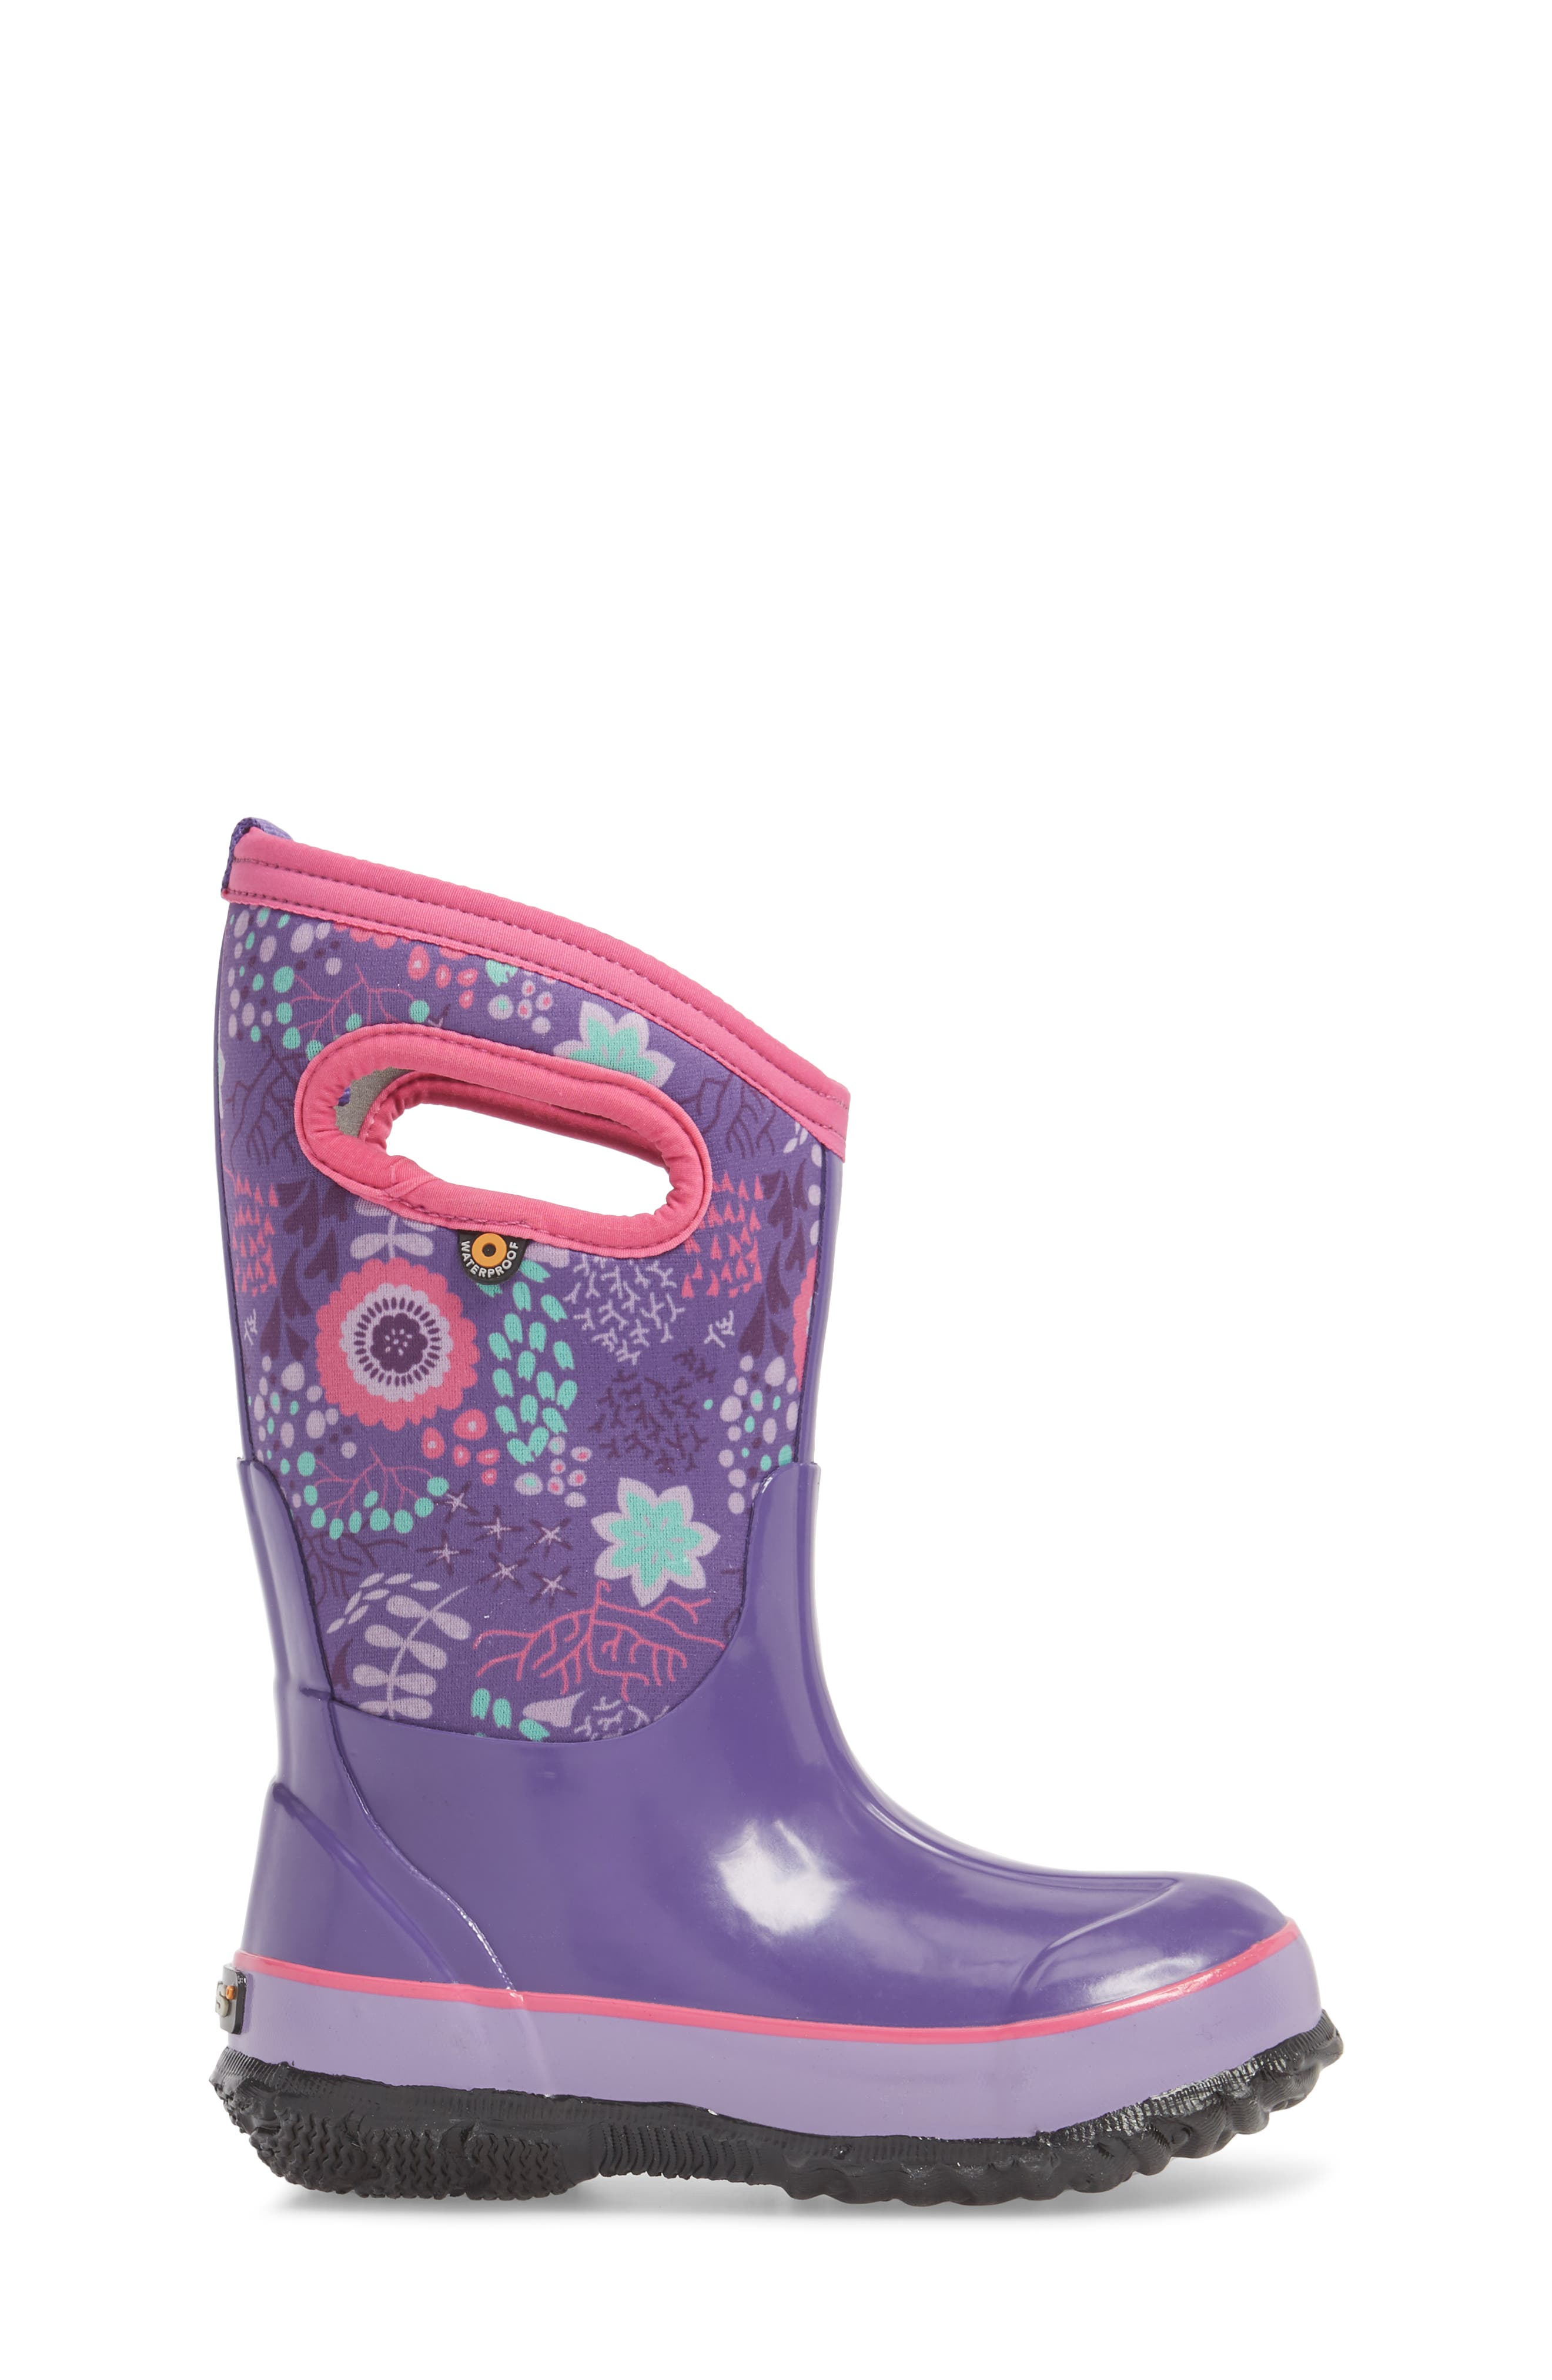 BOGS,                             Classic Reef Insulated Print Waterproof Boot,                             Alternate thumbnail 3, color,                             540